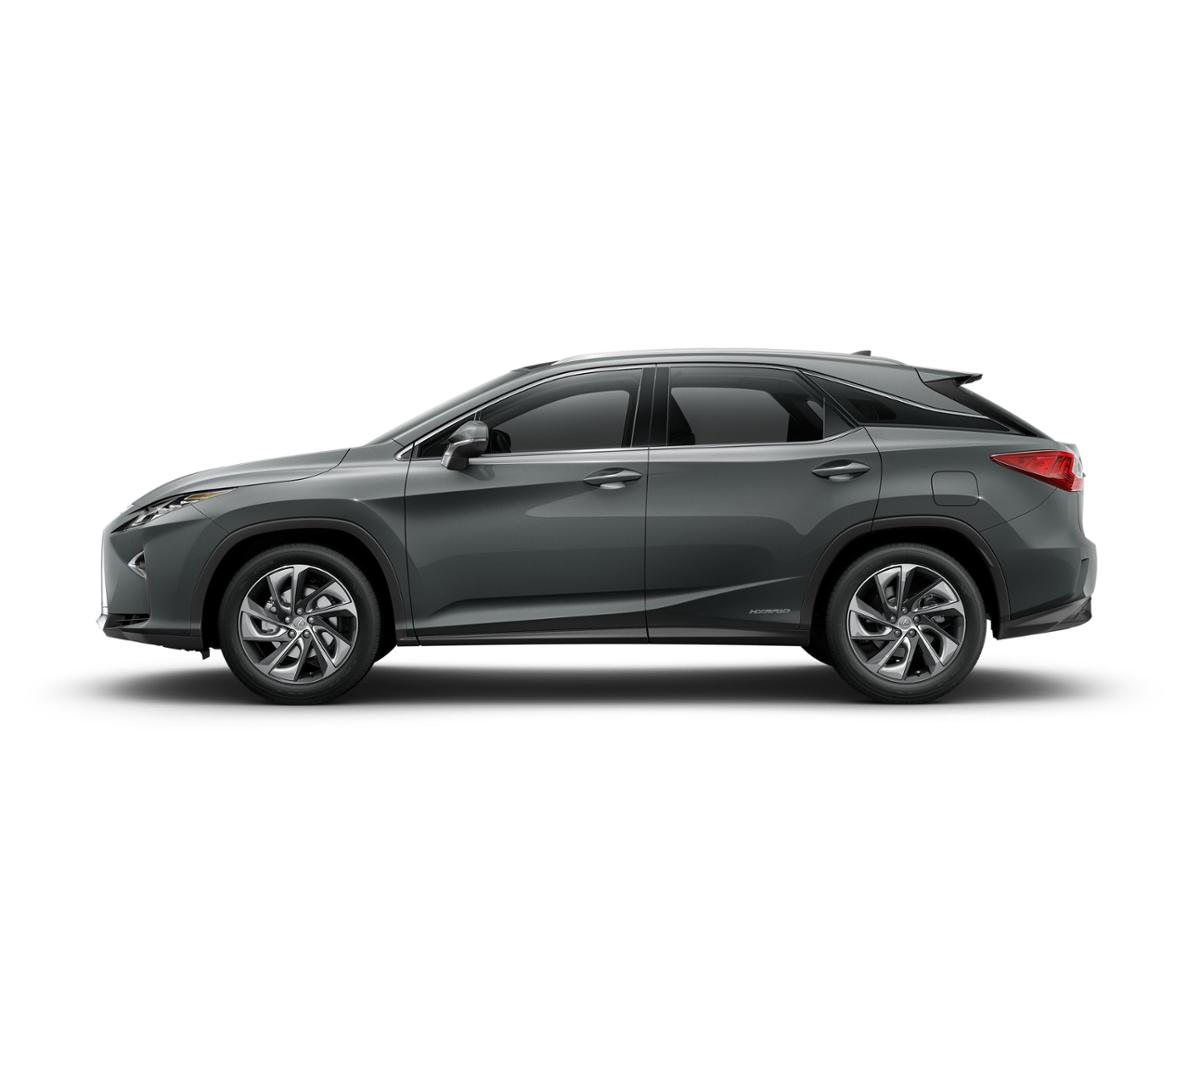 New 2019 Lexus RX 450h For Sale